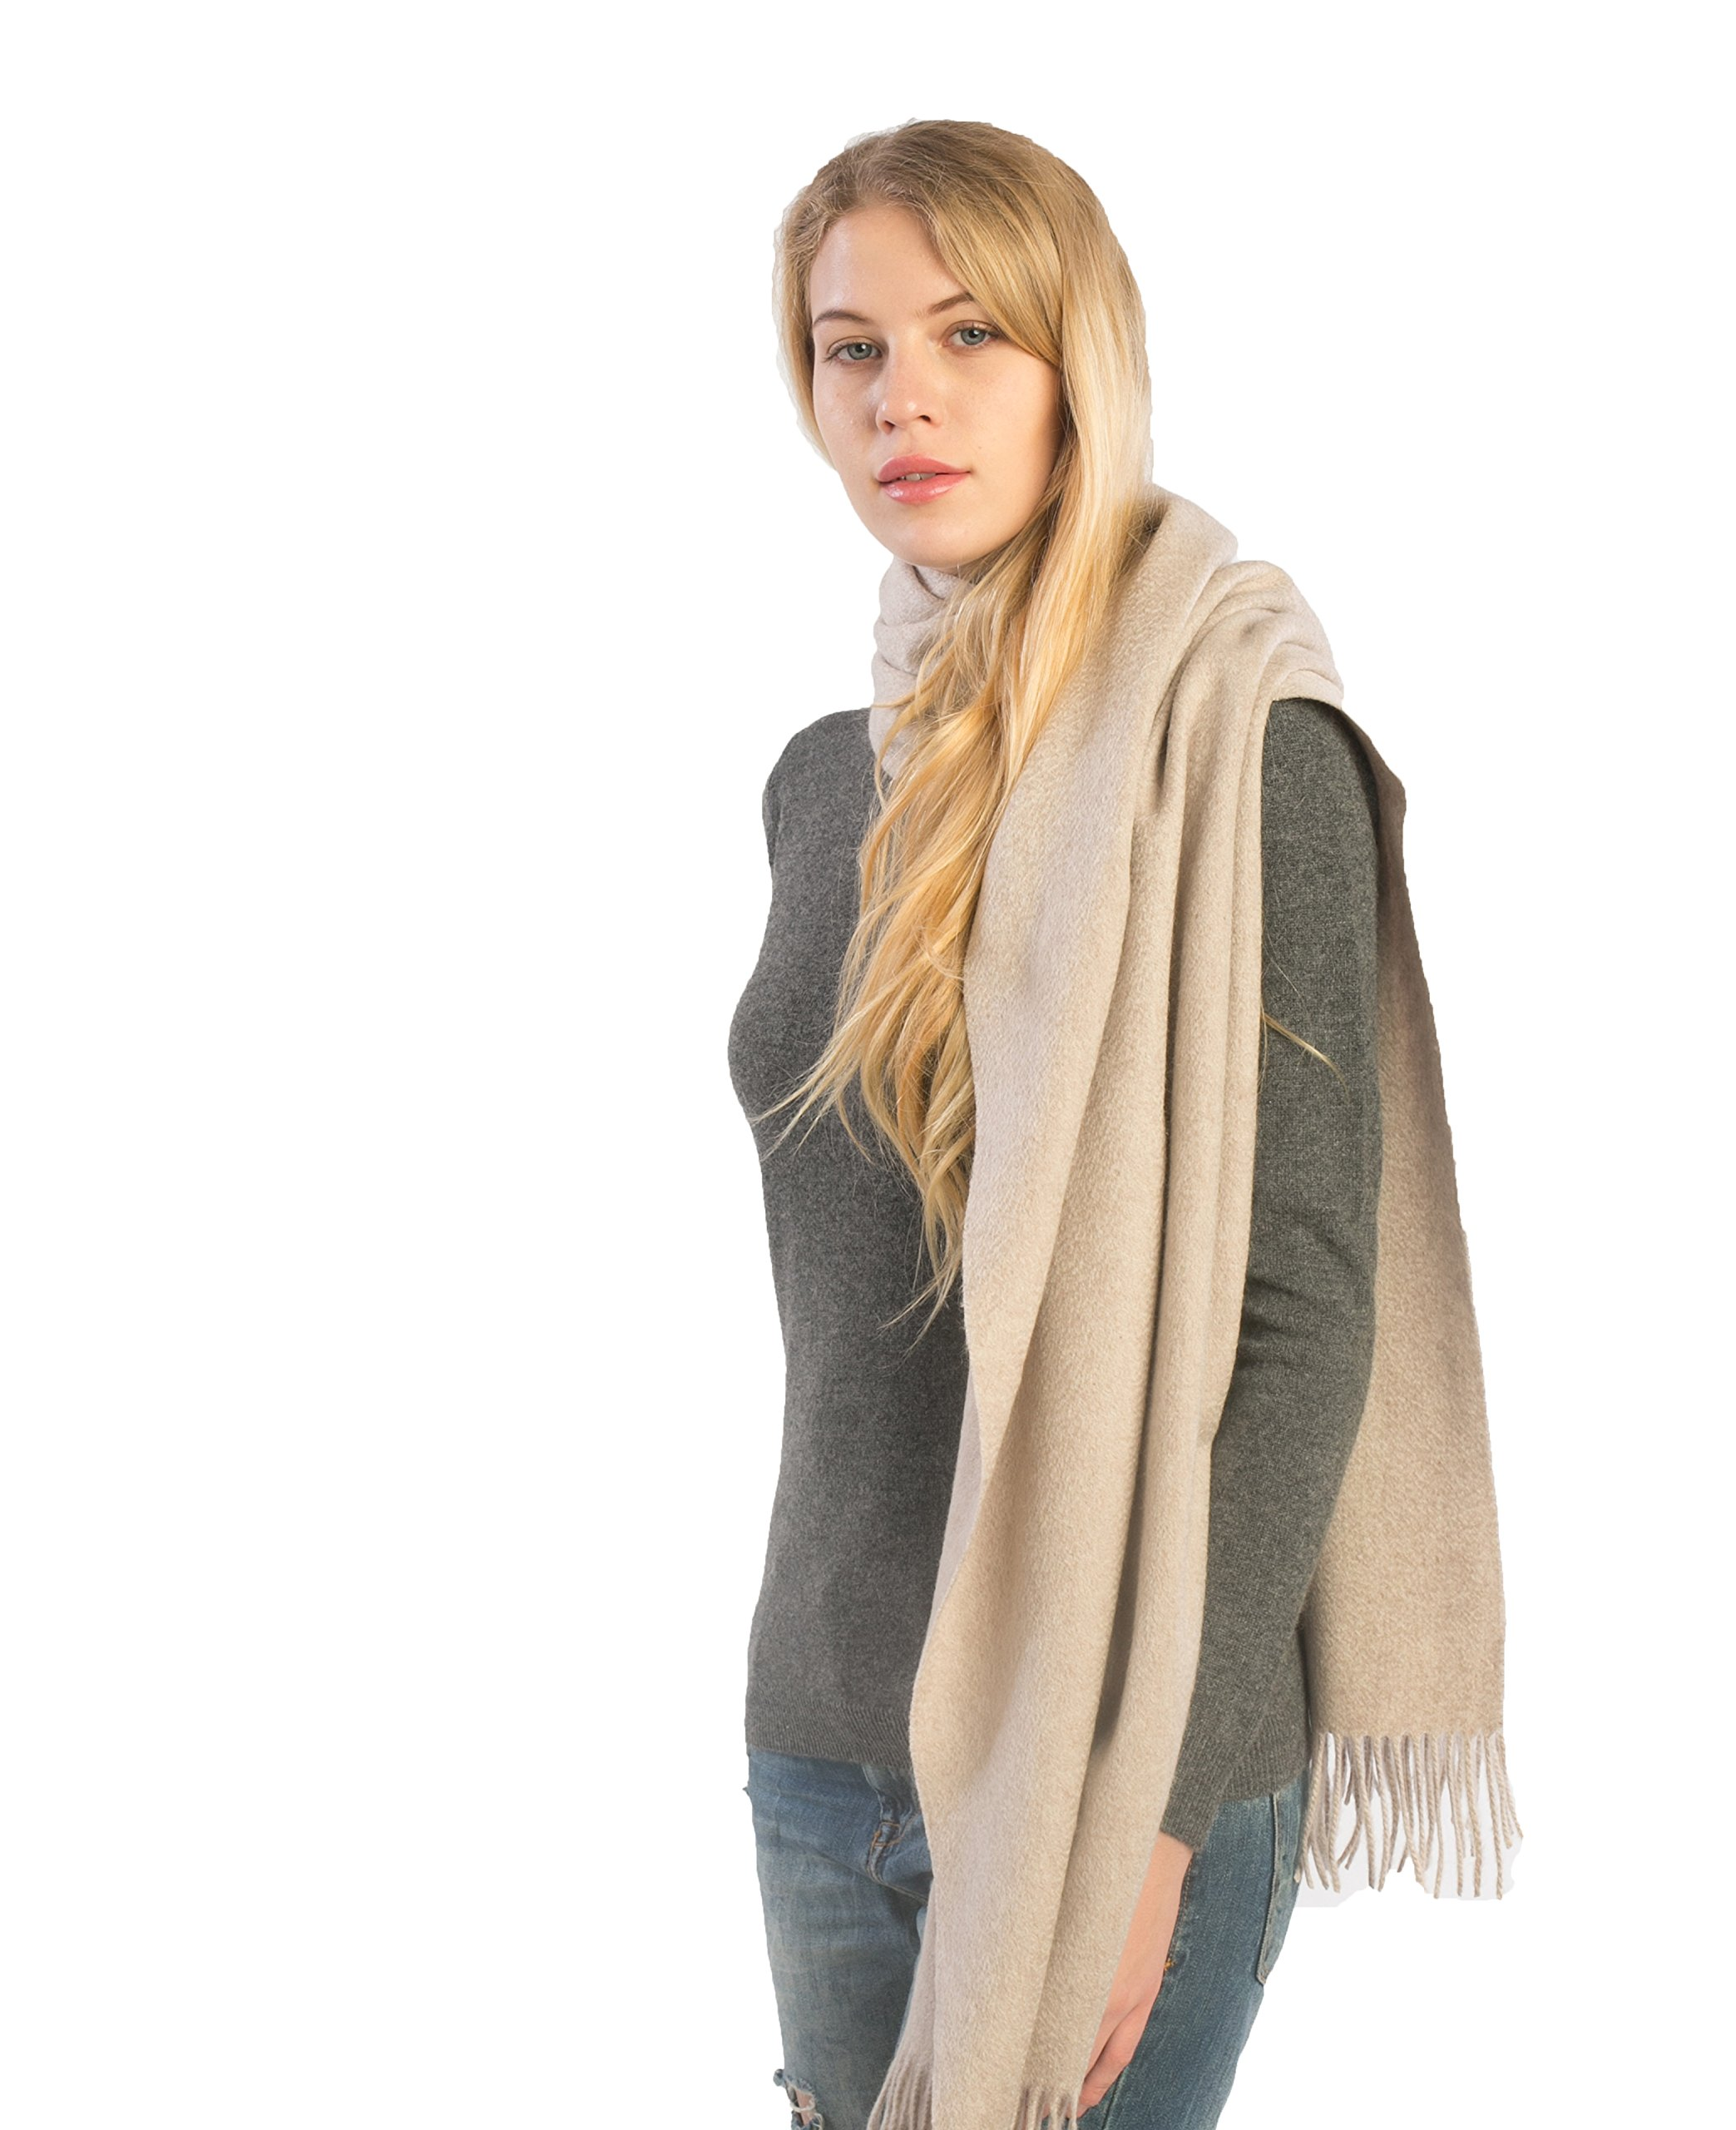 100% Pure Cashmere Shawl Travel Wrap (Stole) - Extra Large Scarf for Women - by cashmere 4 U (cream)